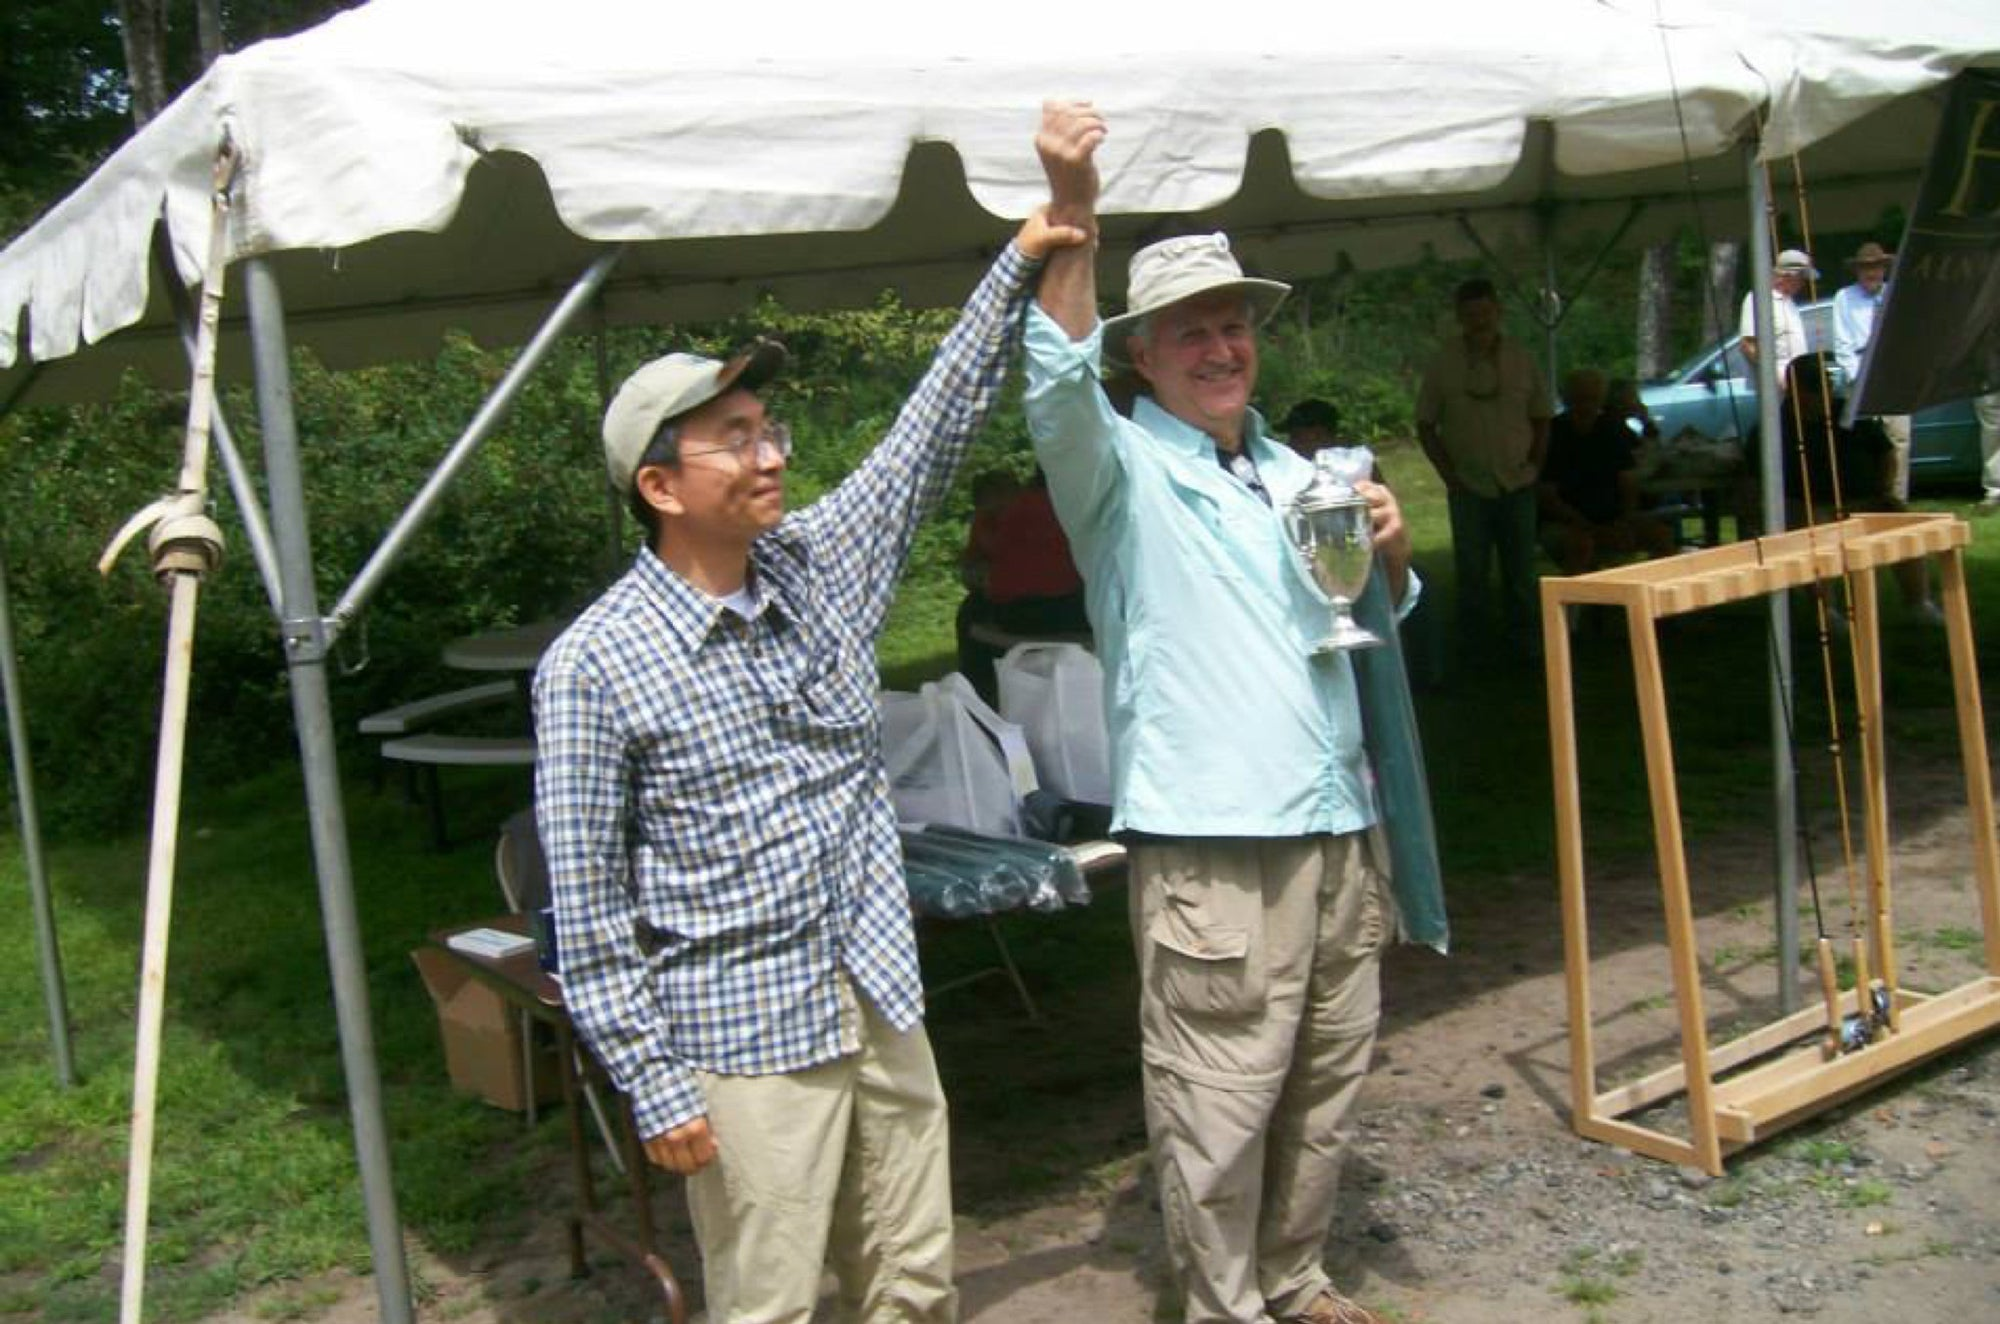 The 2014 Hardy Cup Bamboo Casting Competition